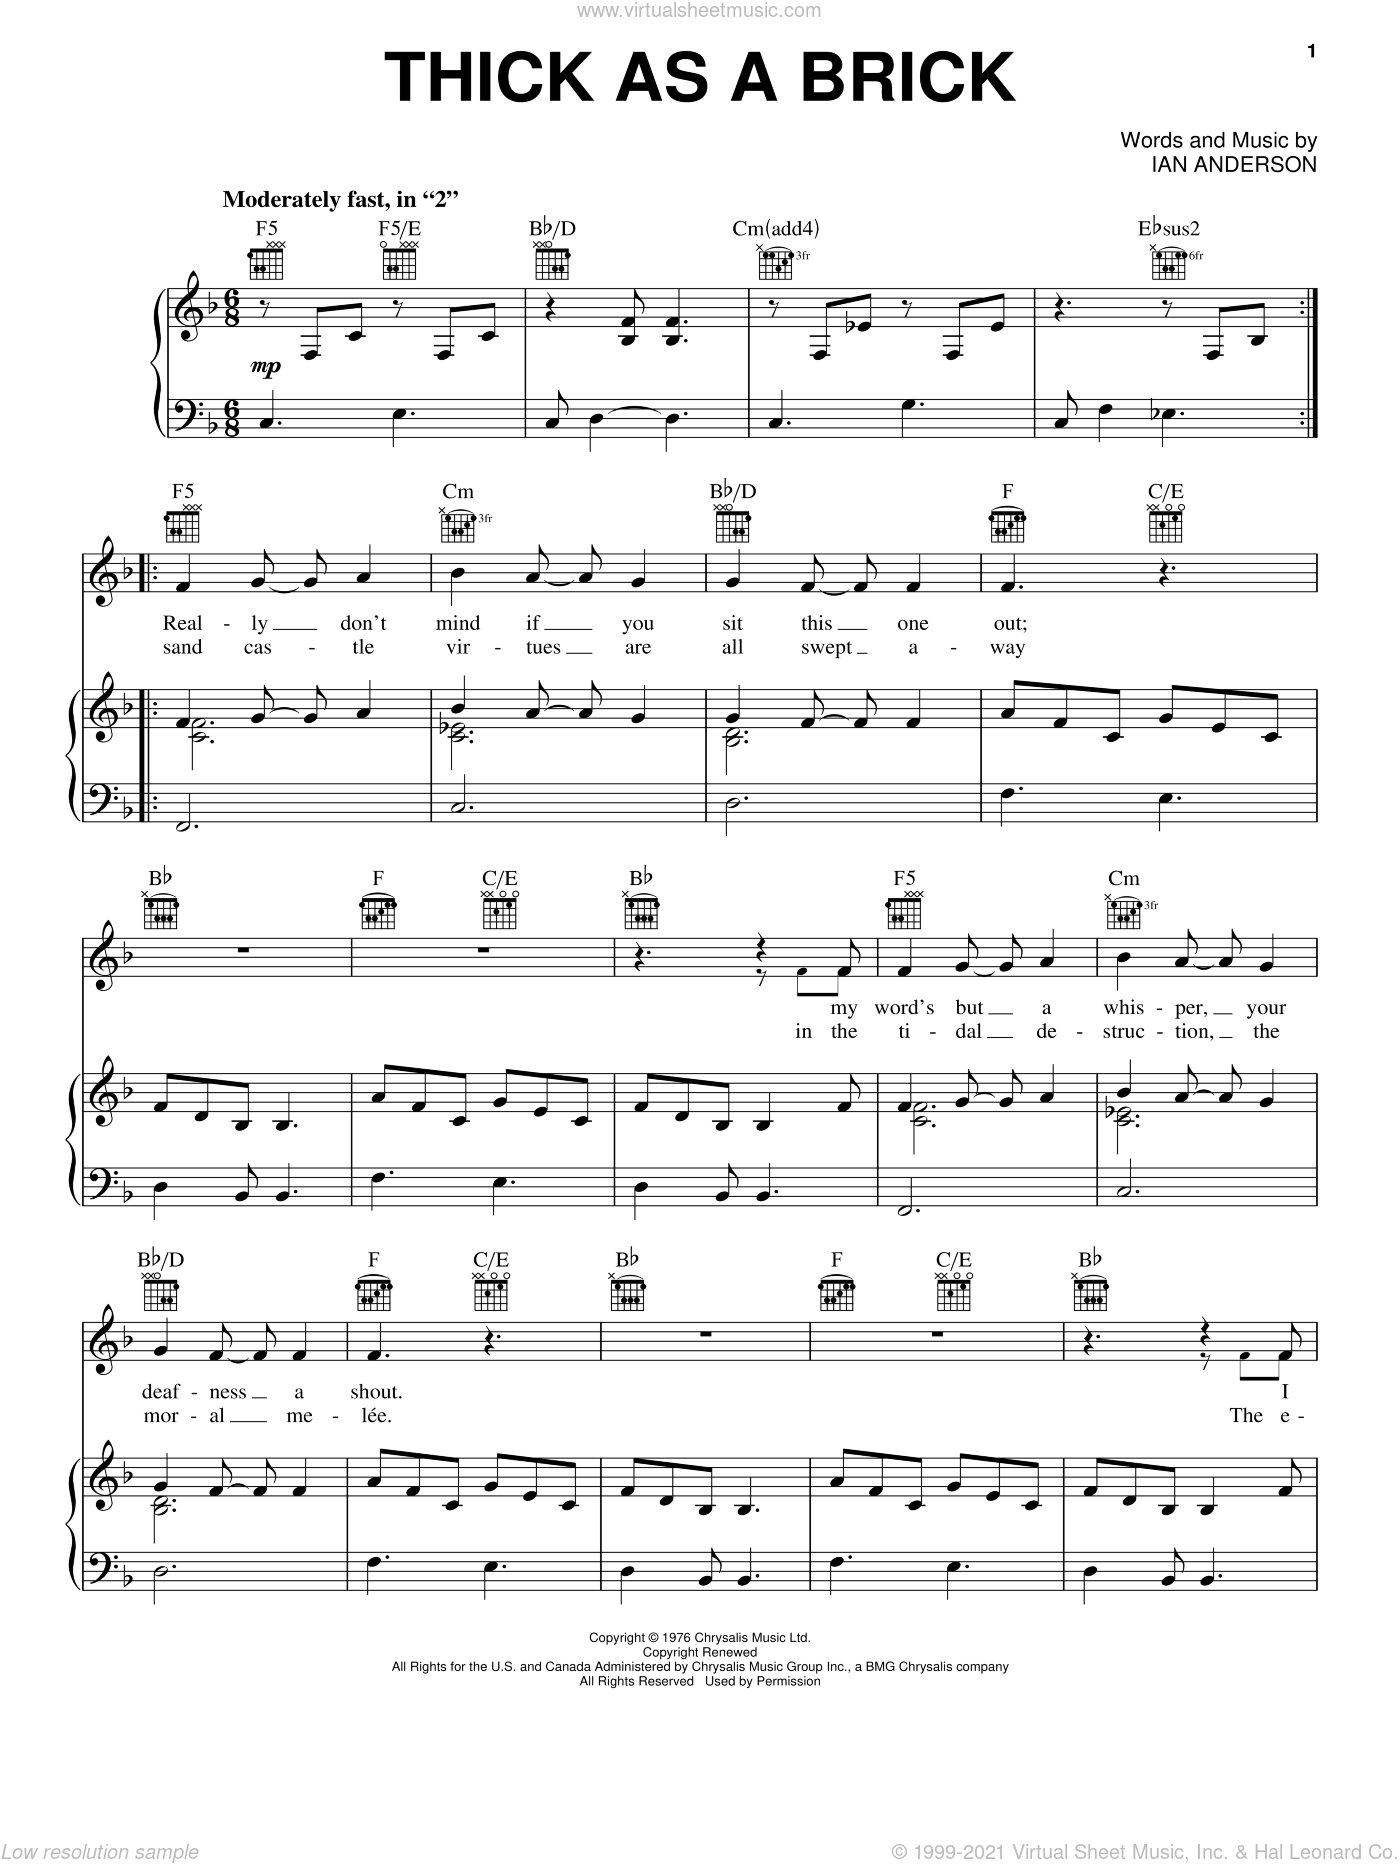 Thick As A Brick sheet music for voice, piano or guitar by Jethro Tull and Ian Anderson, intermediate skill level